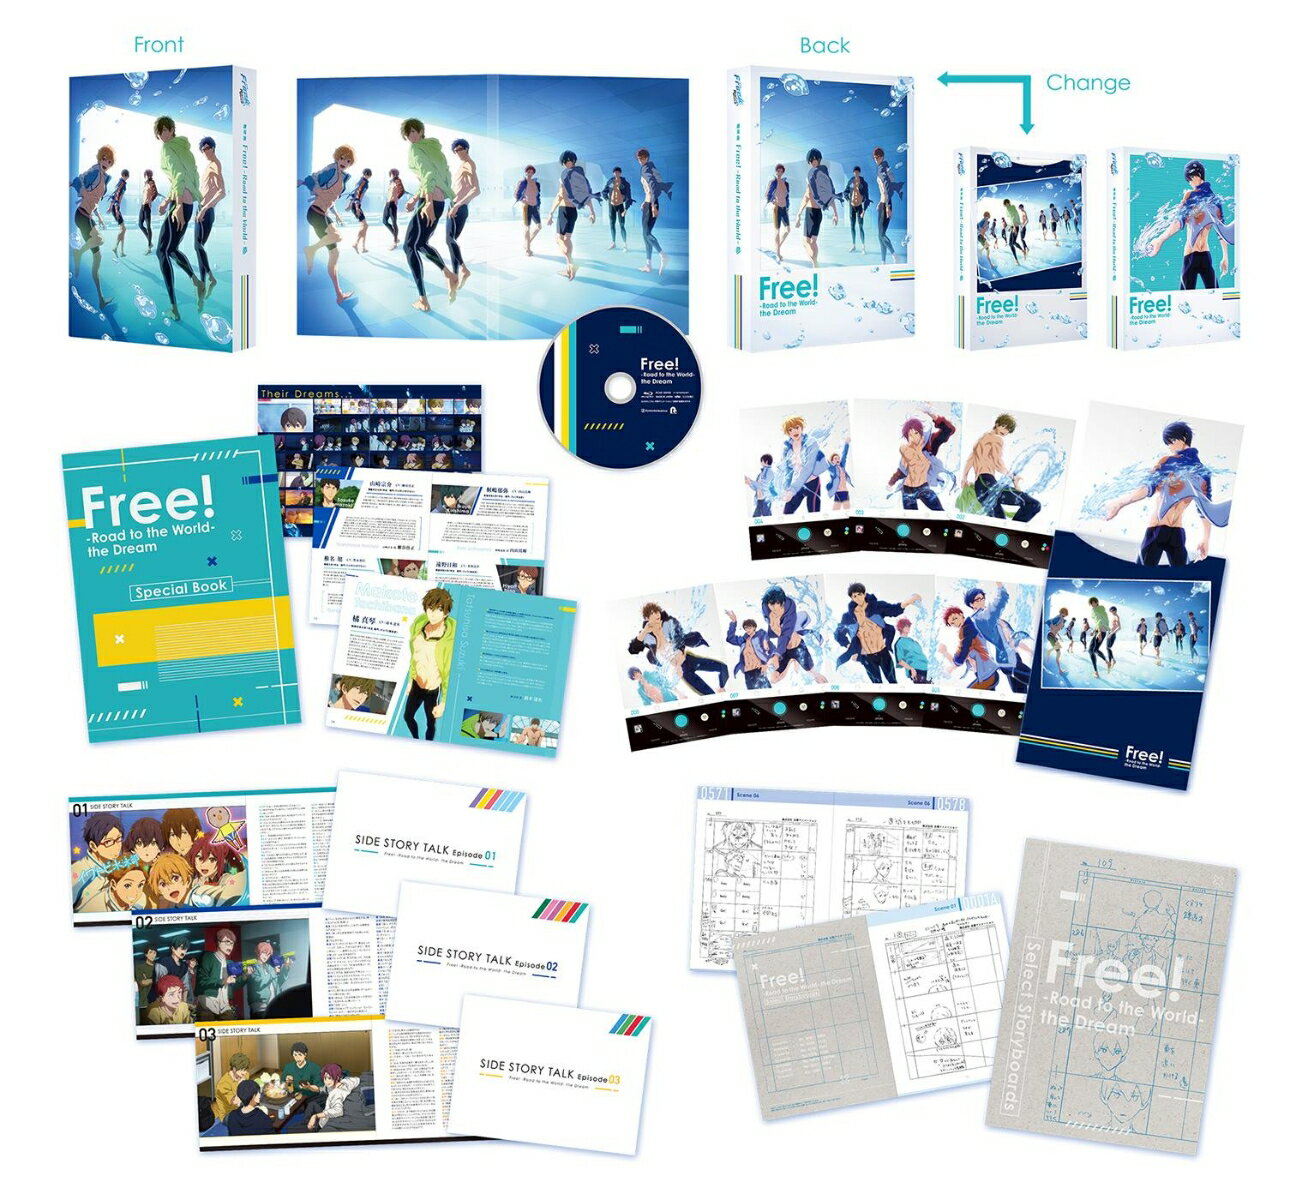 Free!-Road to the World-夢【Blu-ray】